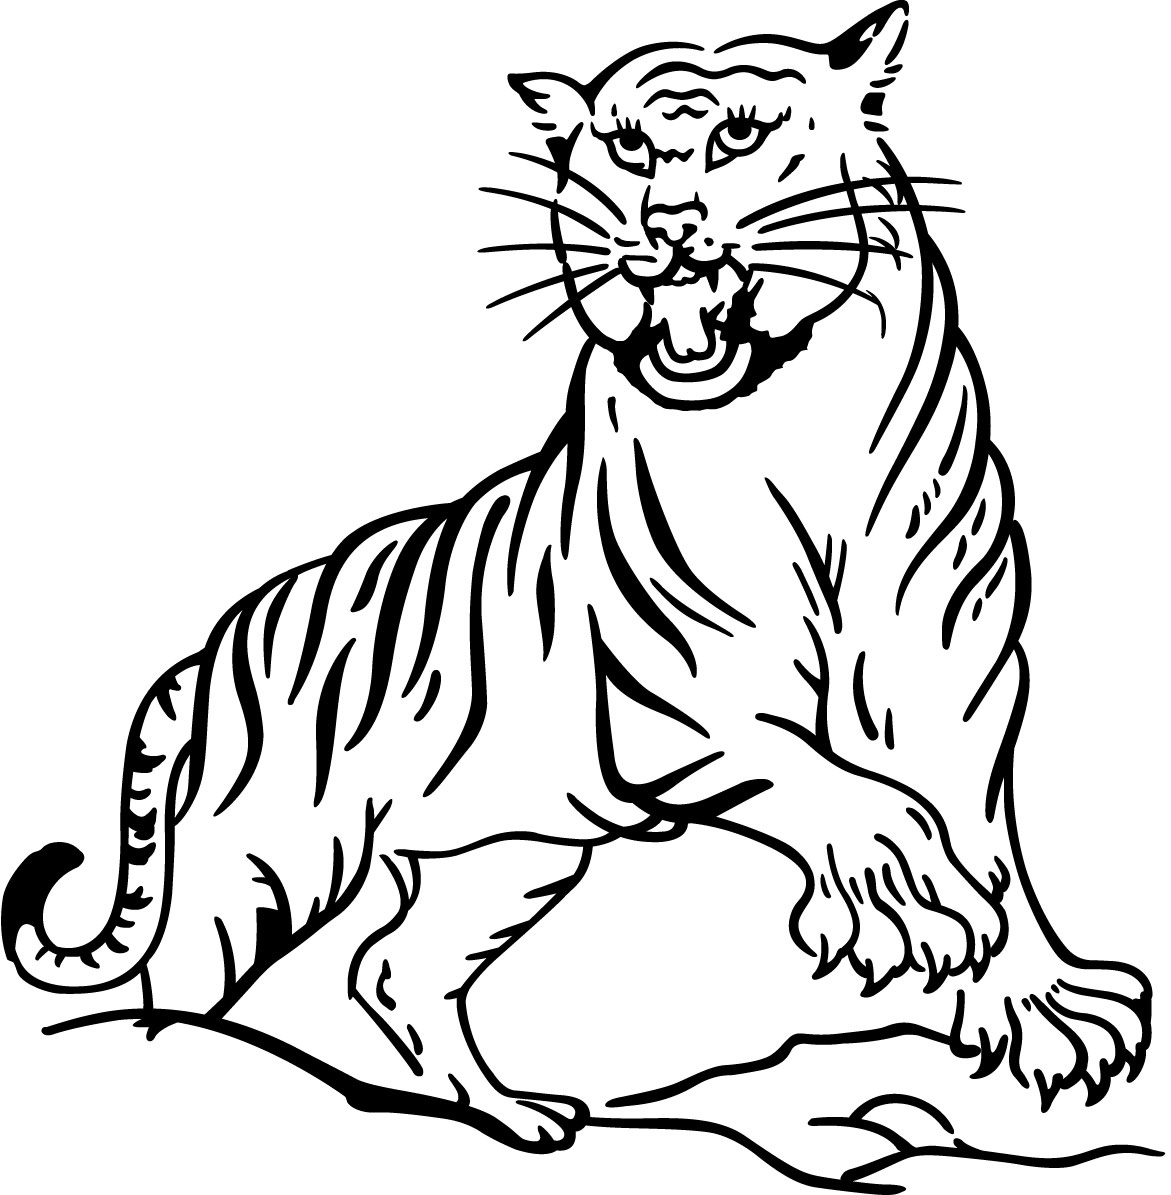 tiger pictures to print free printable tiger coloring pages for kids pictures to print tiger